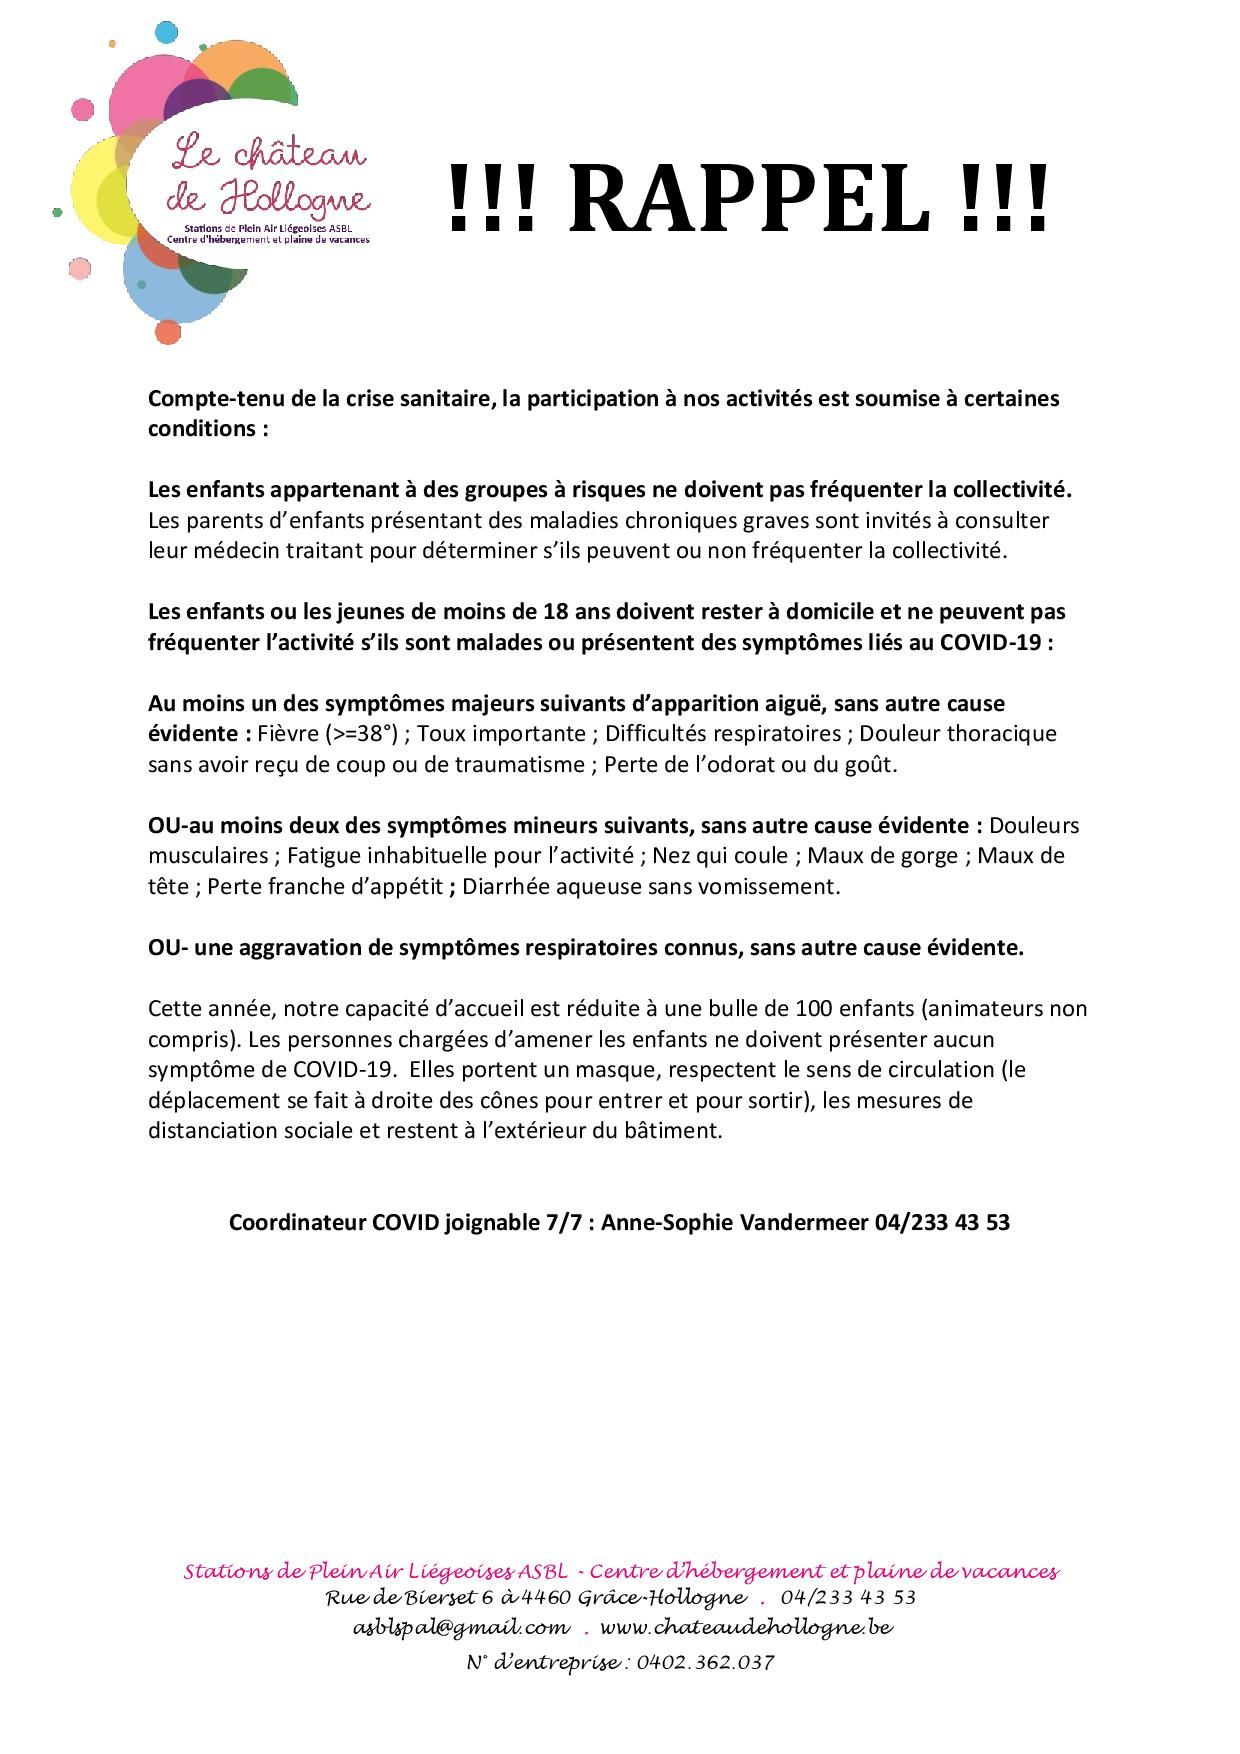 Rappel sanitaire-page-001.jpg